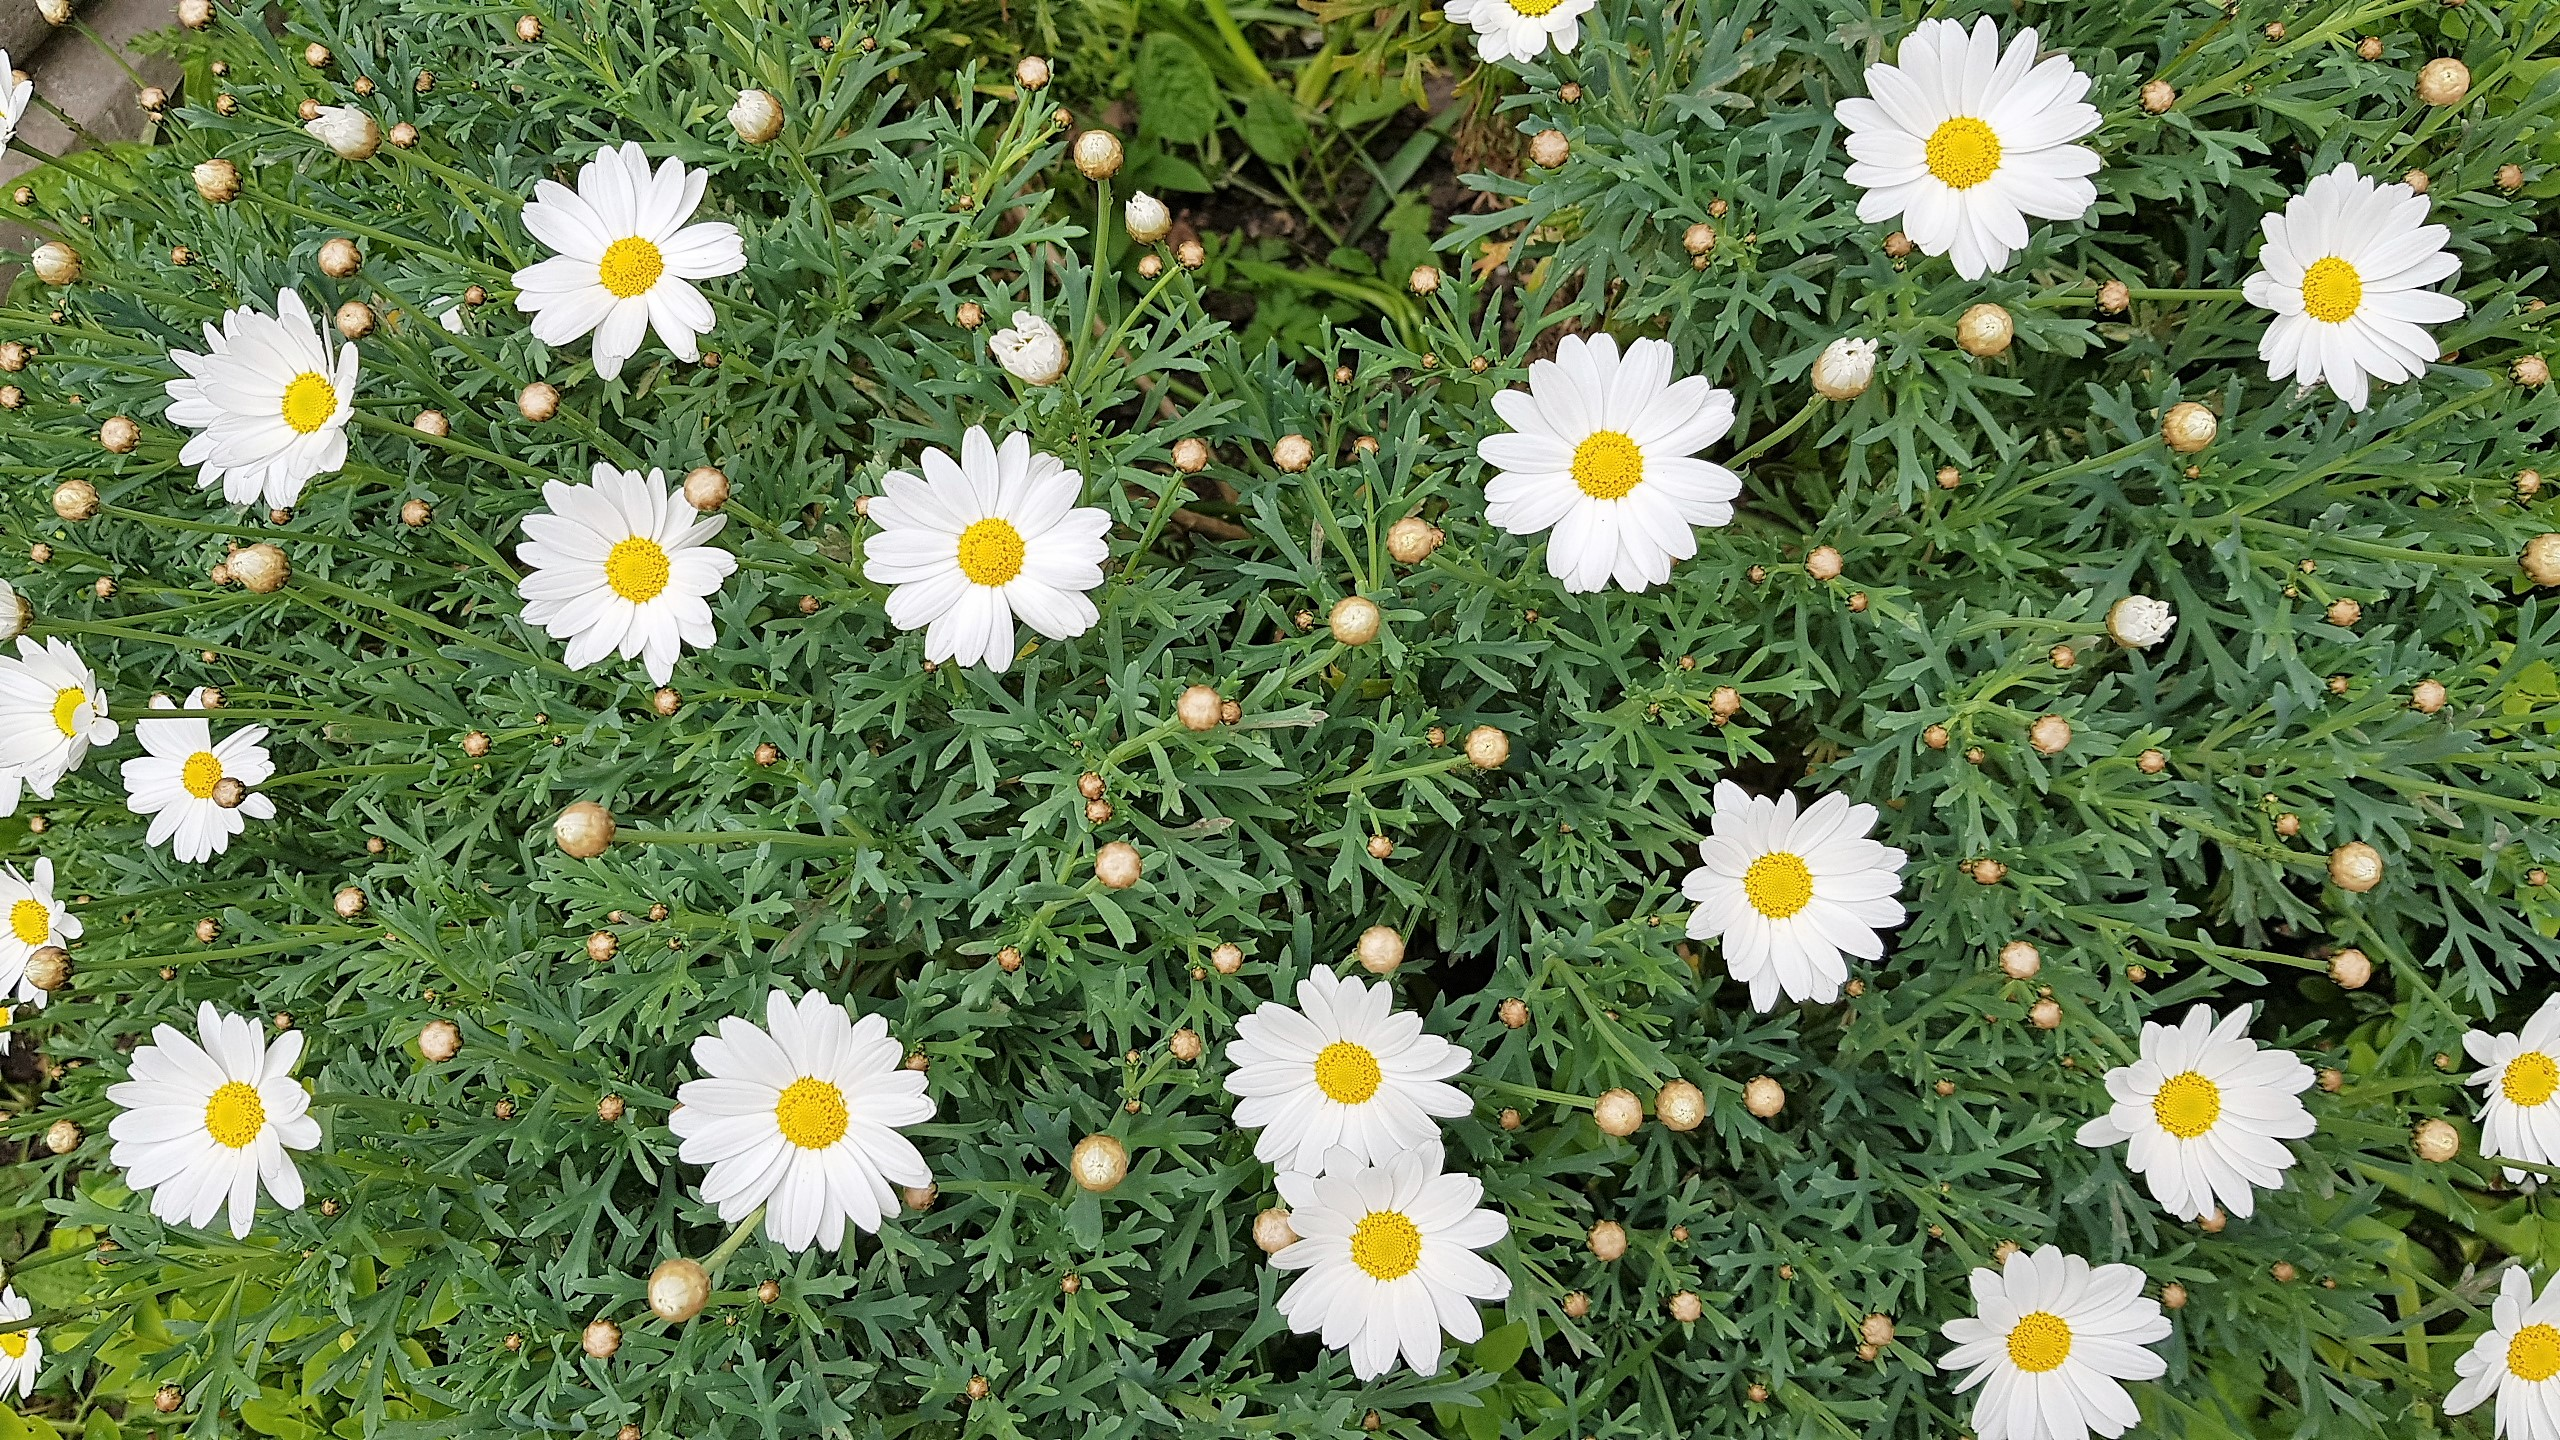 Large white daisies with yellow centres